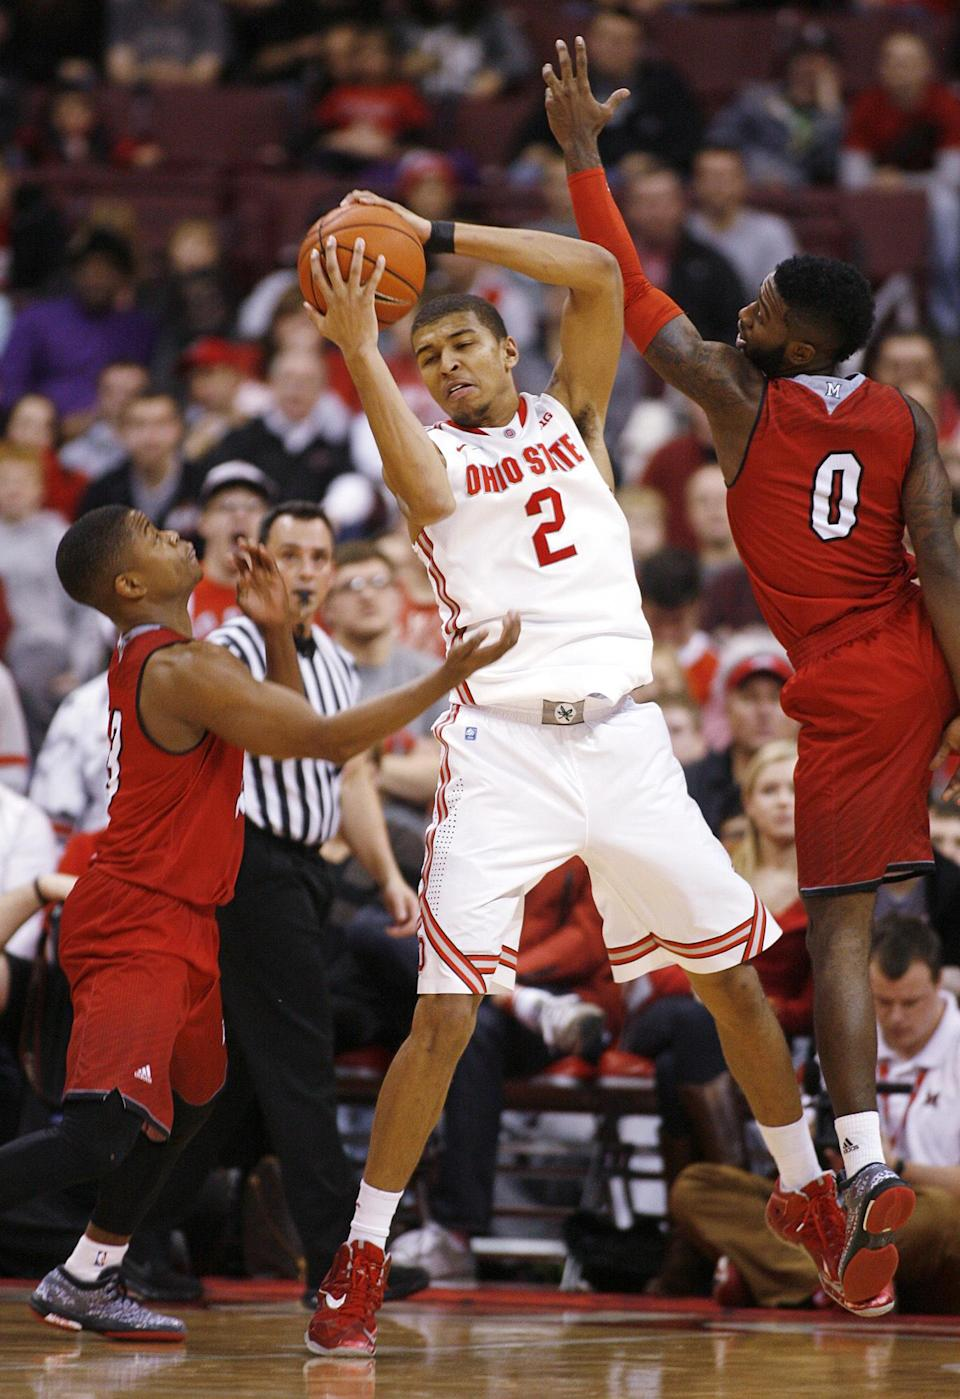 Ohio State's Marc Loving (2) rebounds between Miami's Eric Washington (33) and Geovonie McKnight (0) during the second half of an NCAA college basketball game, Monday, Dec. 22, 2014, in Columbus, Ohio. Ohio State won 93-55. (AP Photo/Mike Munden)